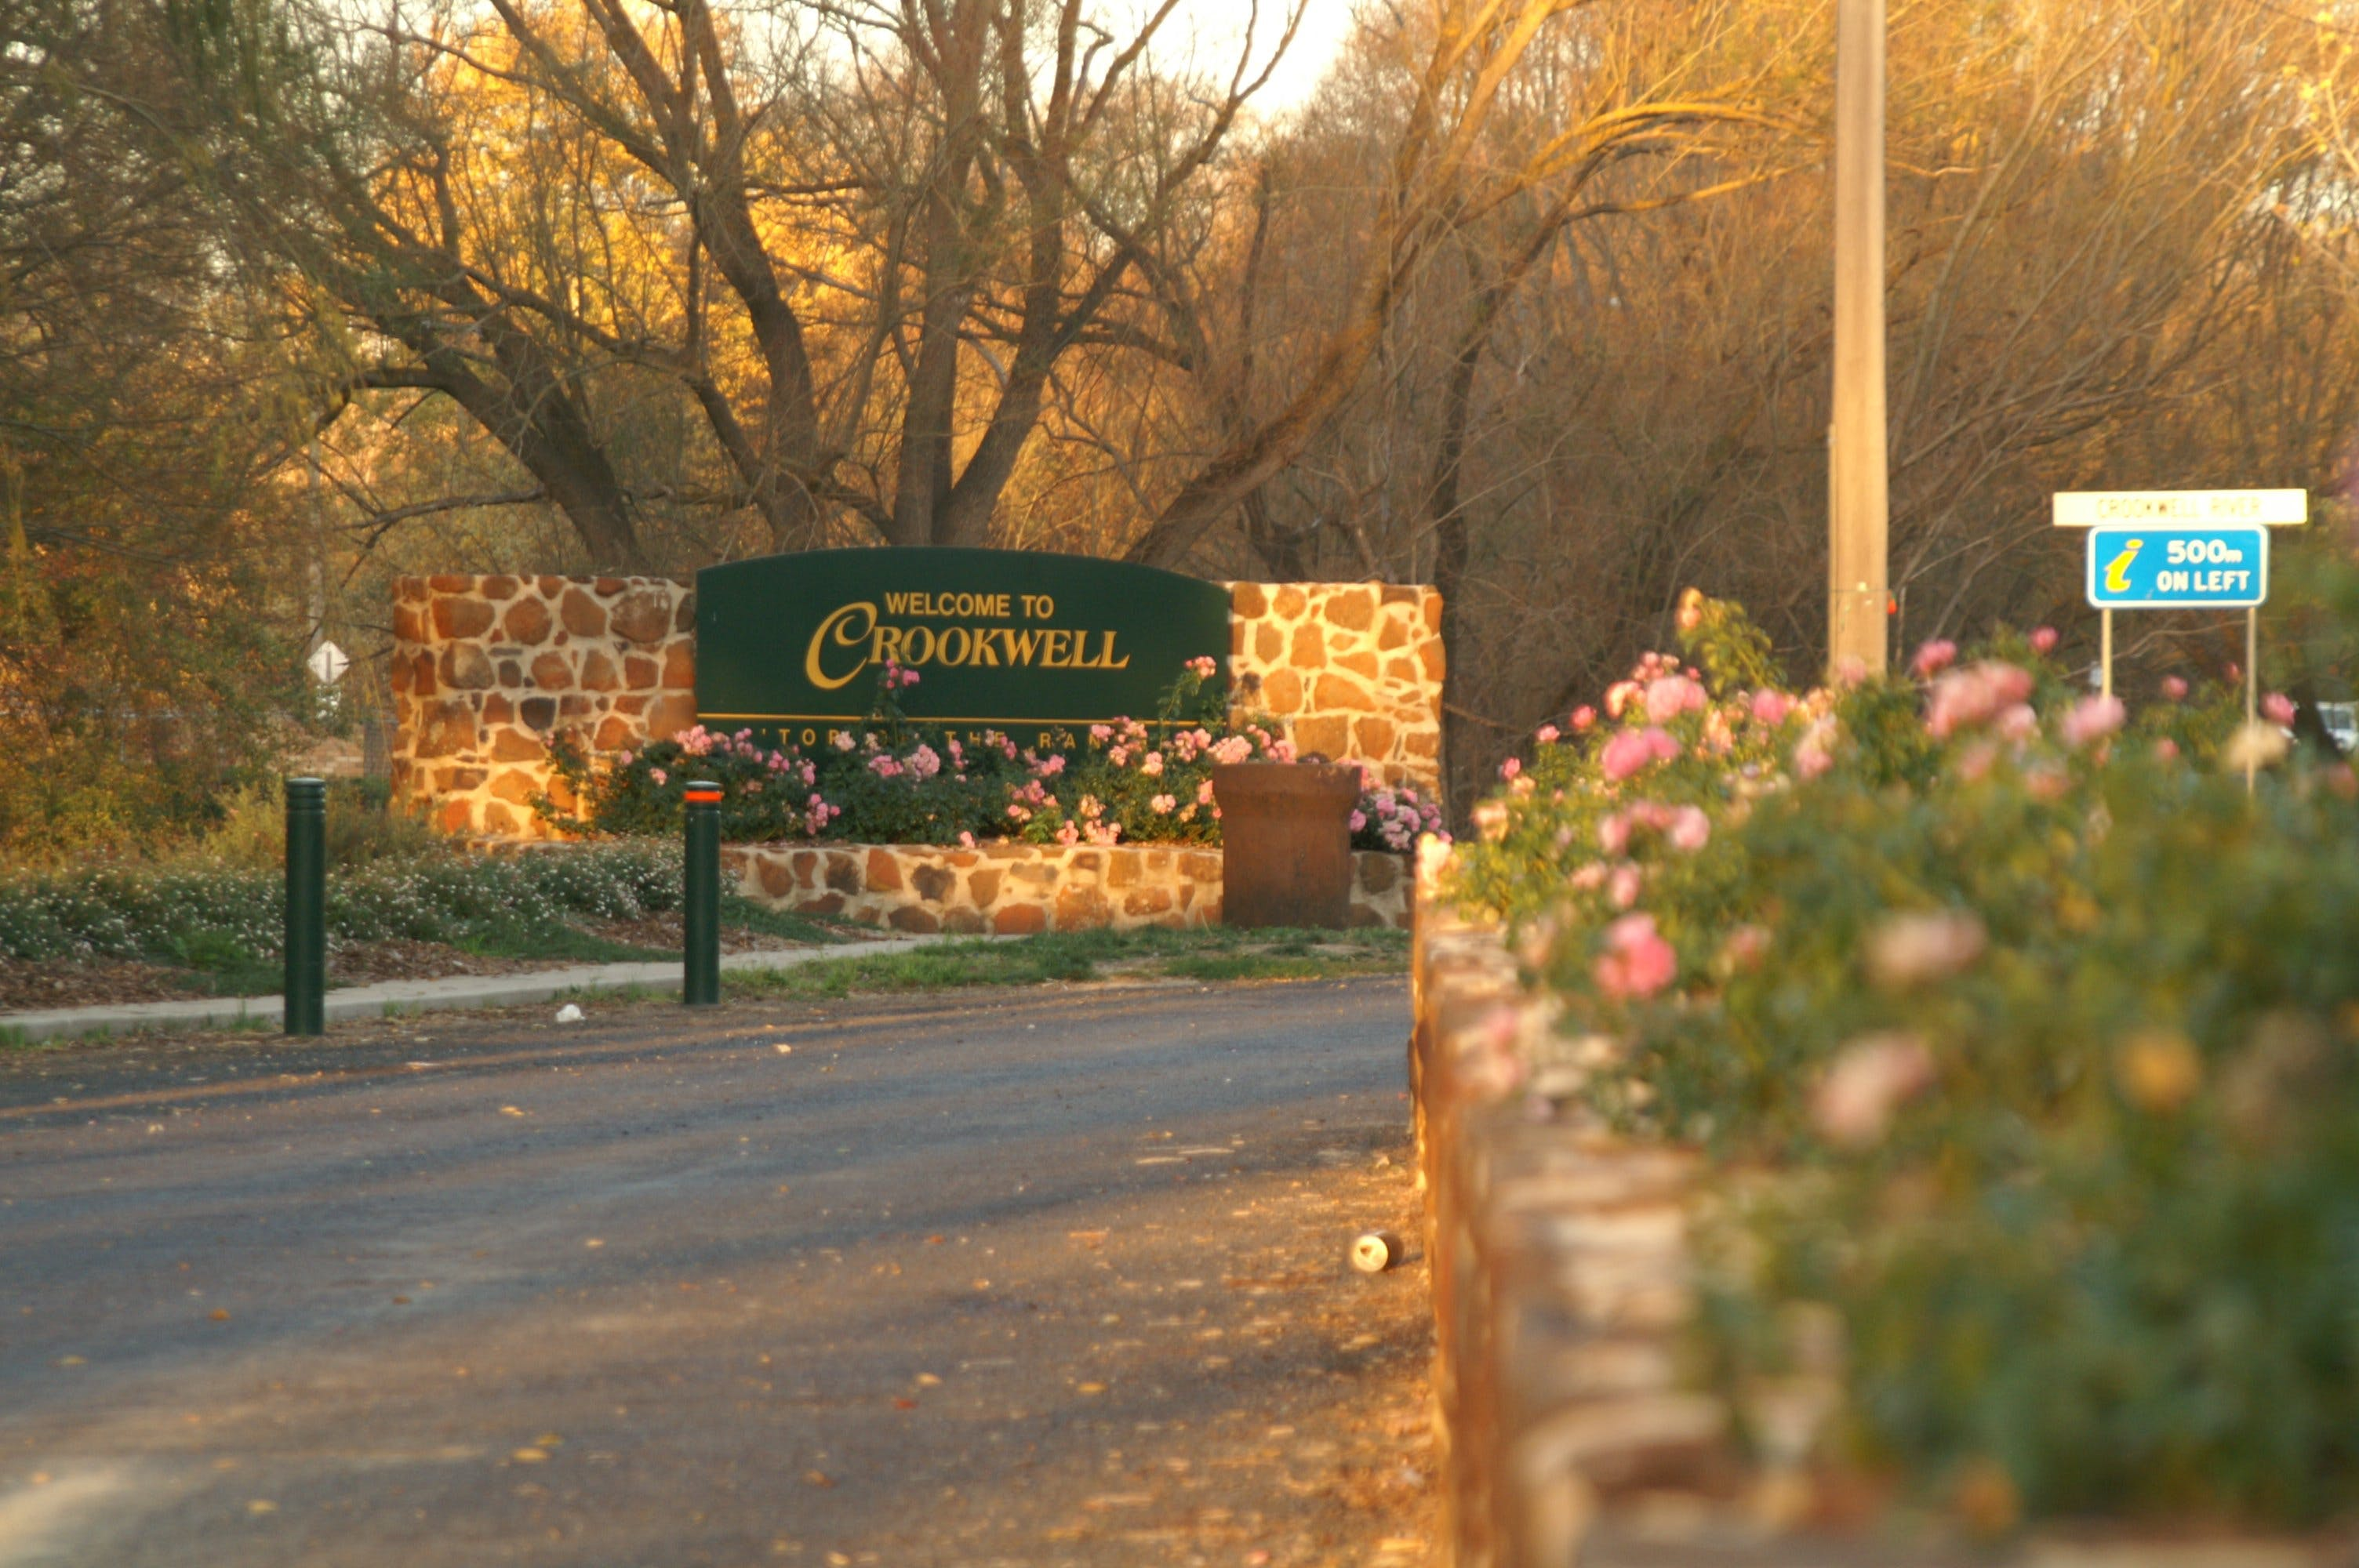 Crookwell - Find Attractions